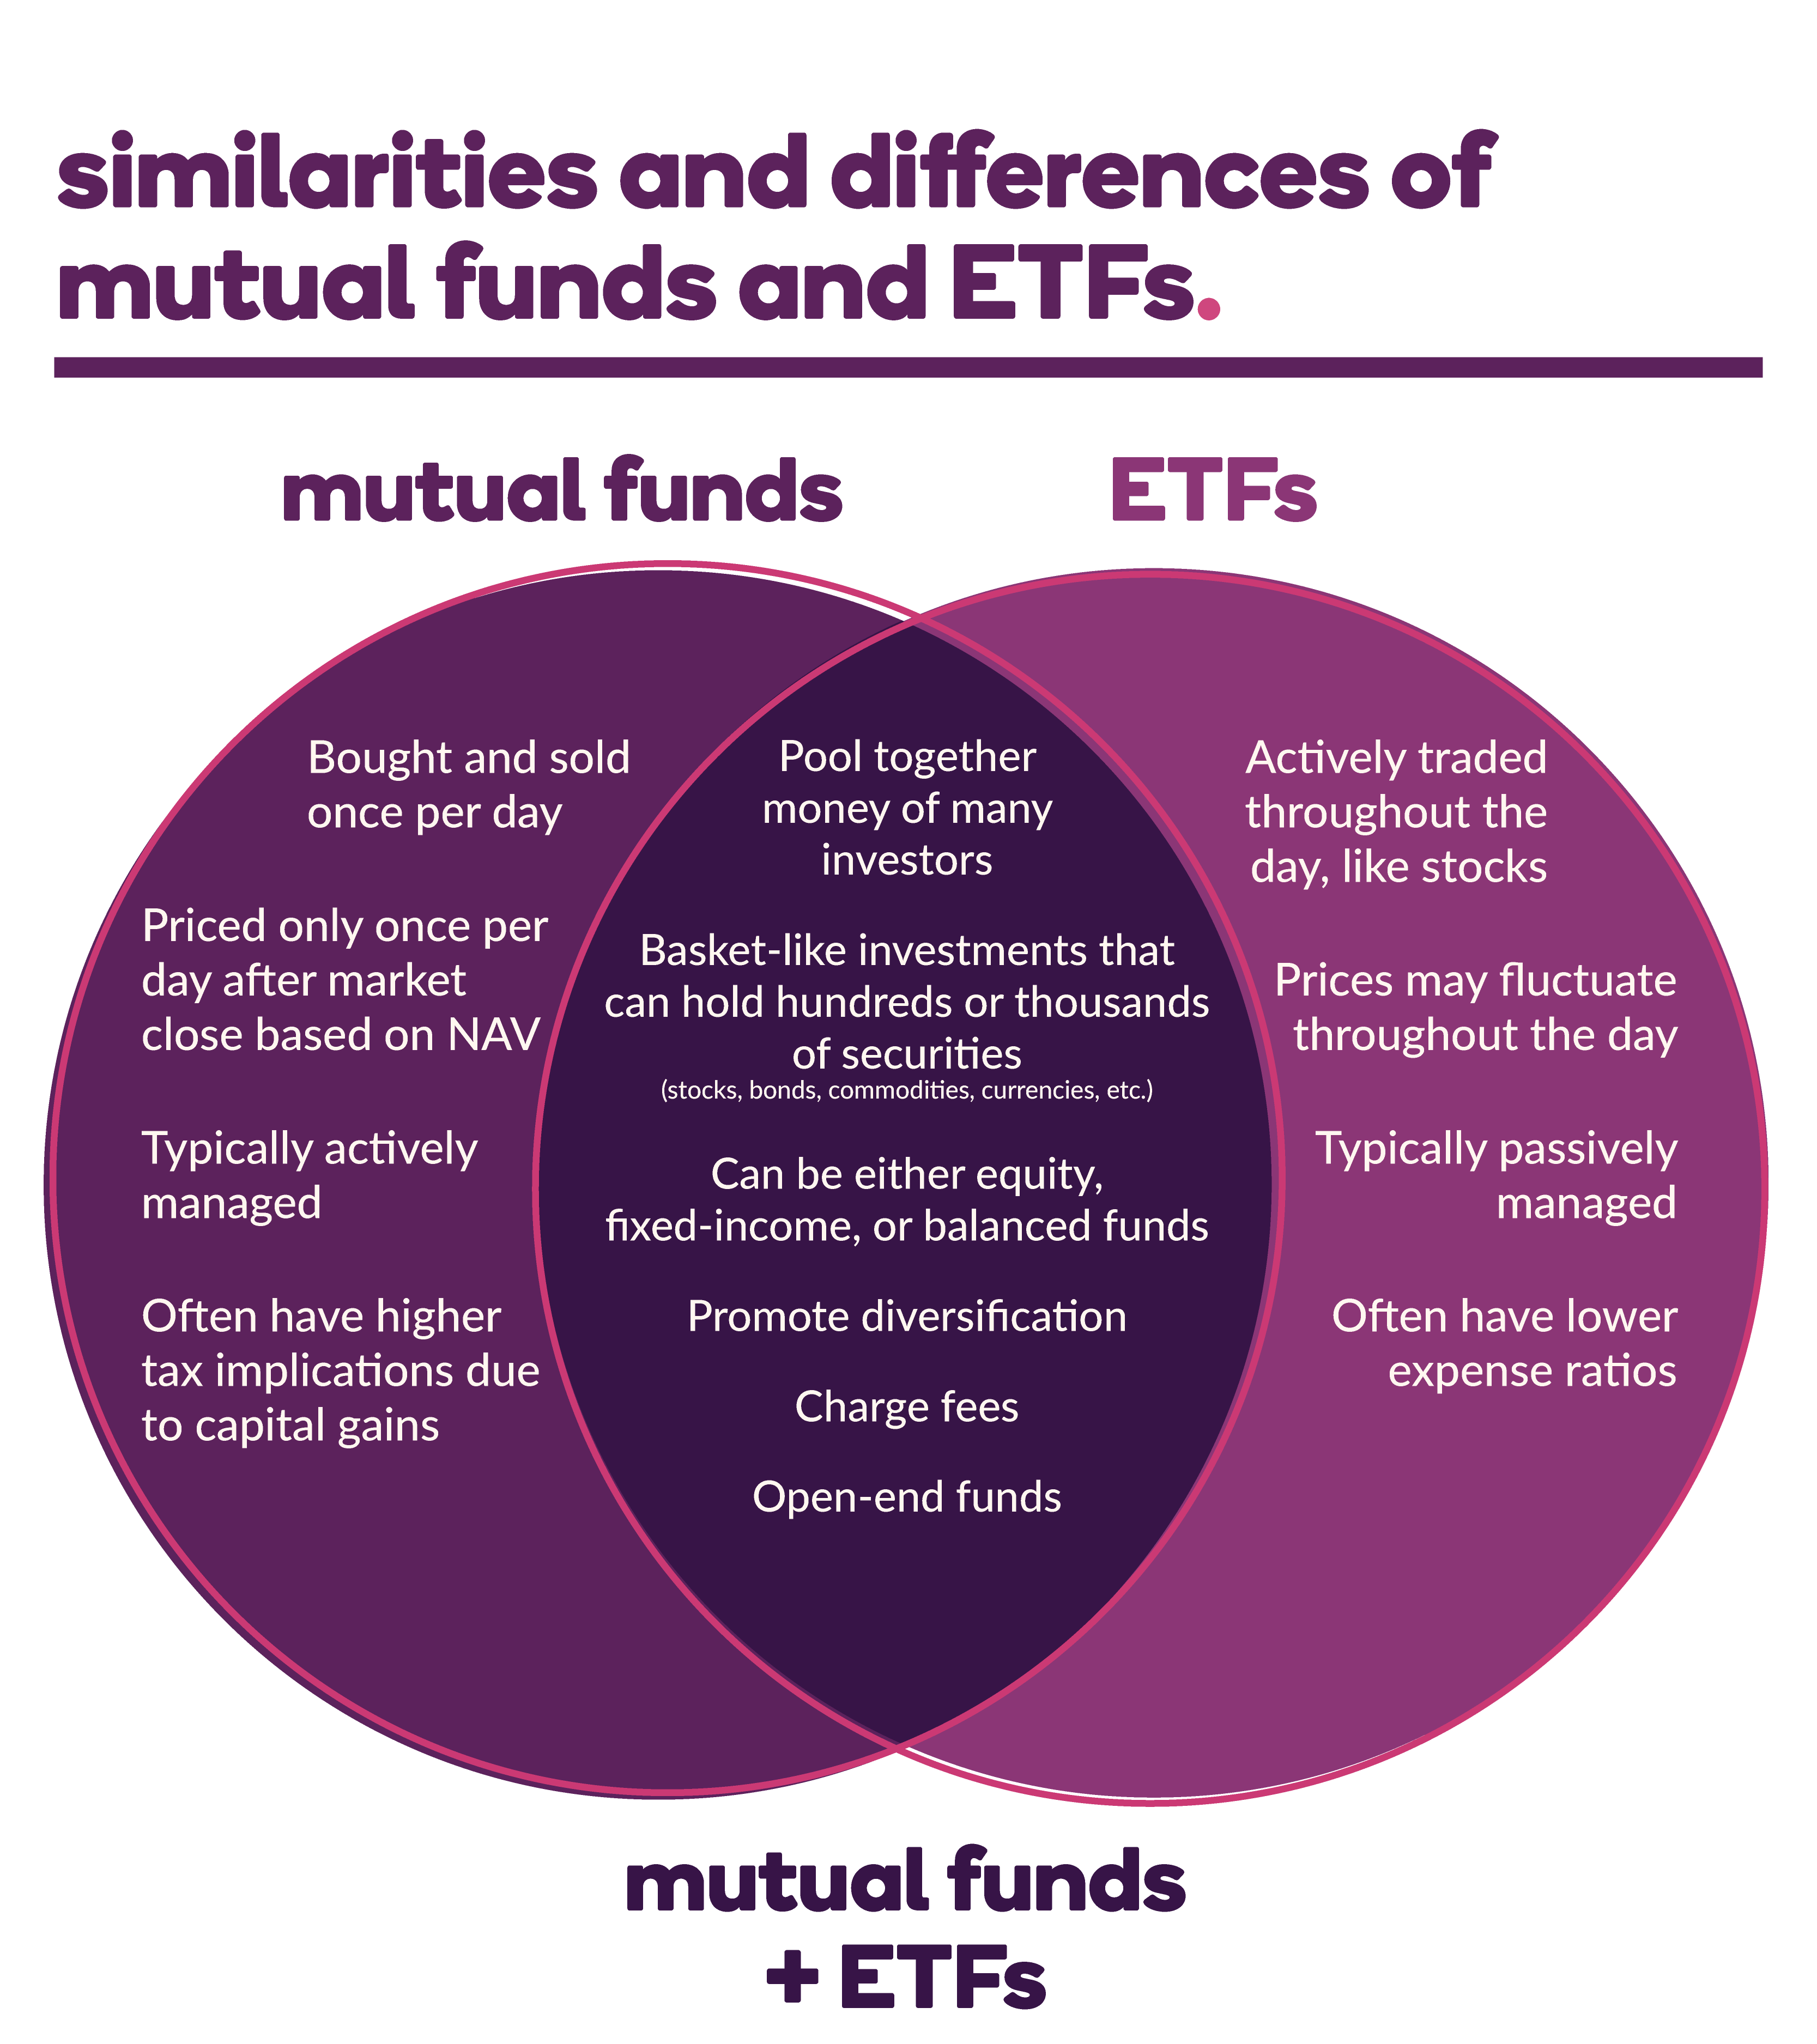 Similarities and differences between mutual funds and ETFs in a Venn Diagram